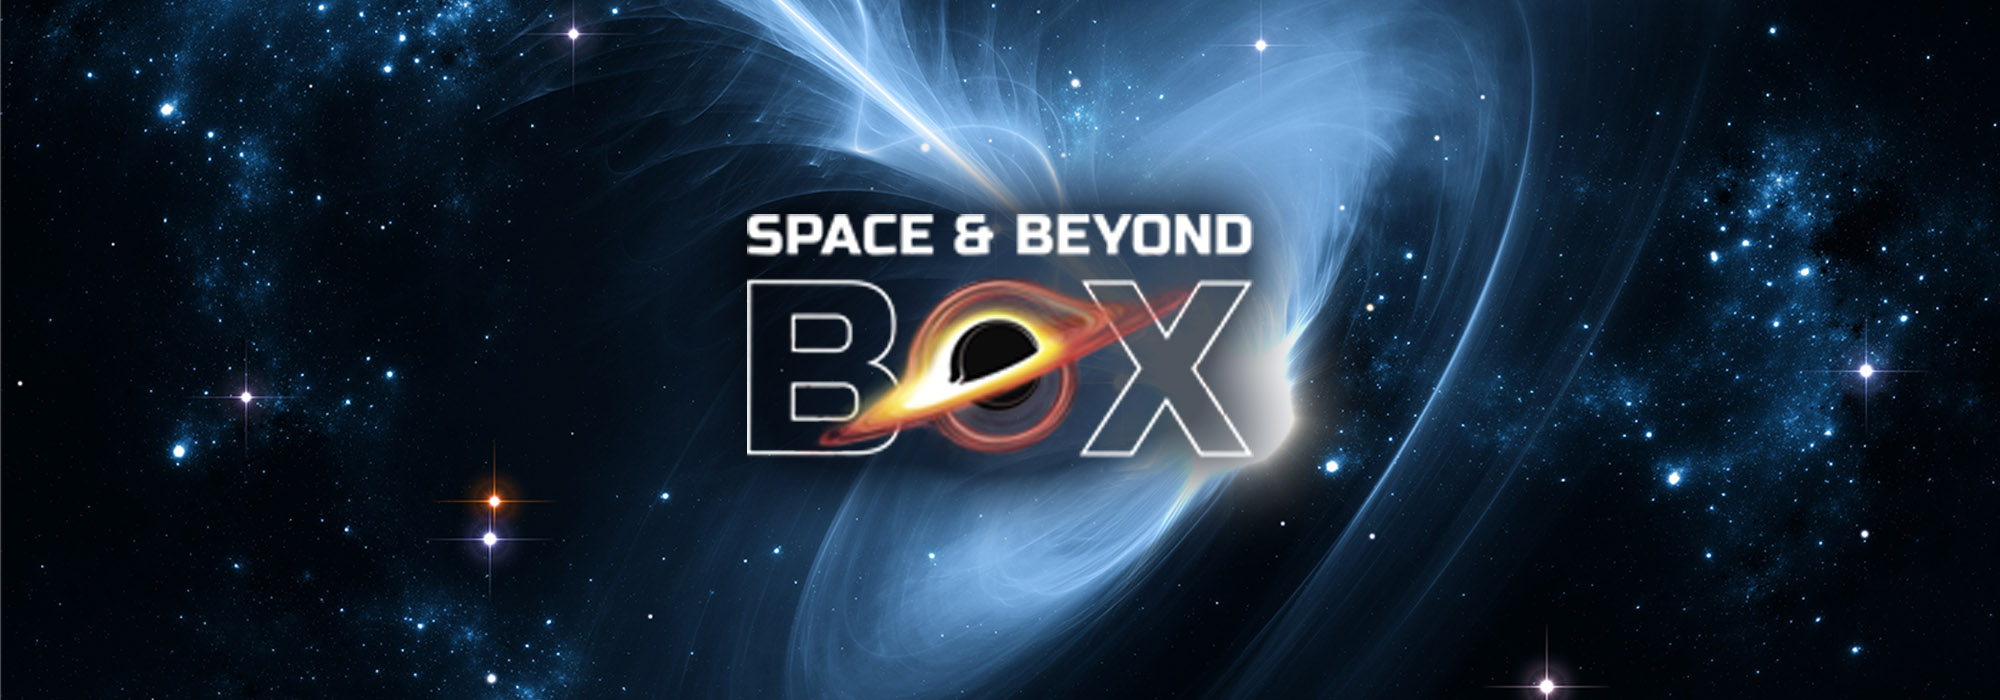 The Space and Beyond Box logo with an illustration of a black hole behind it